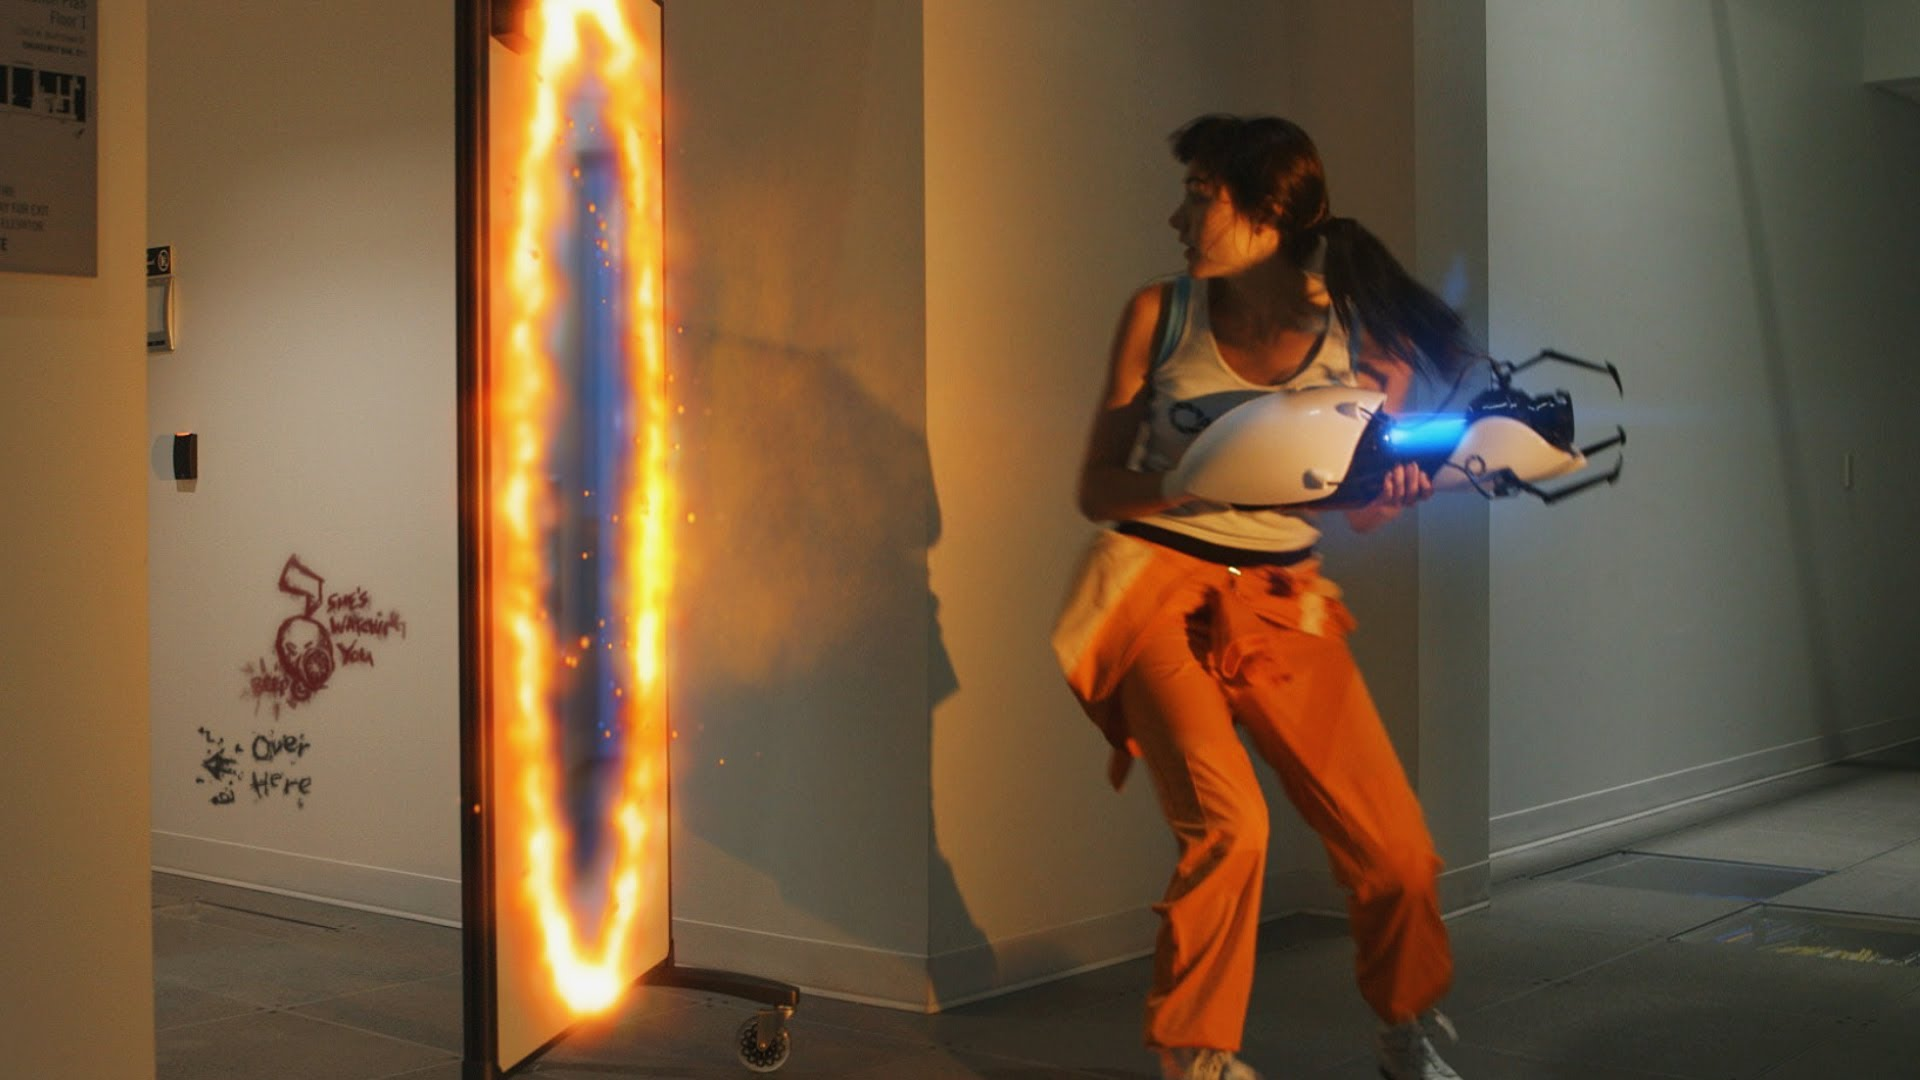 Portal: Survive!, A Live-Action Short Film Based on the Video Game 'Portal'